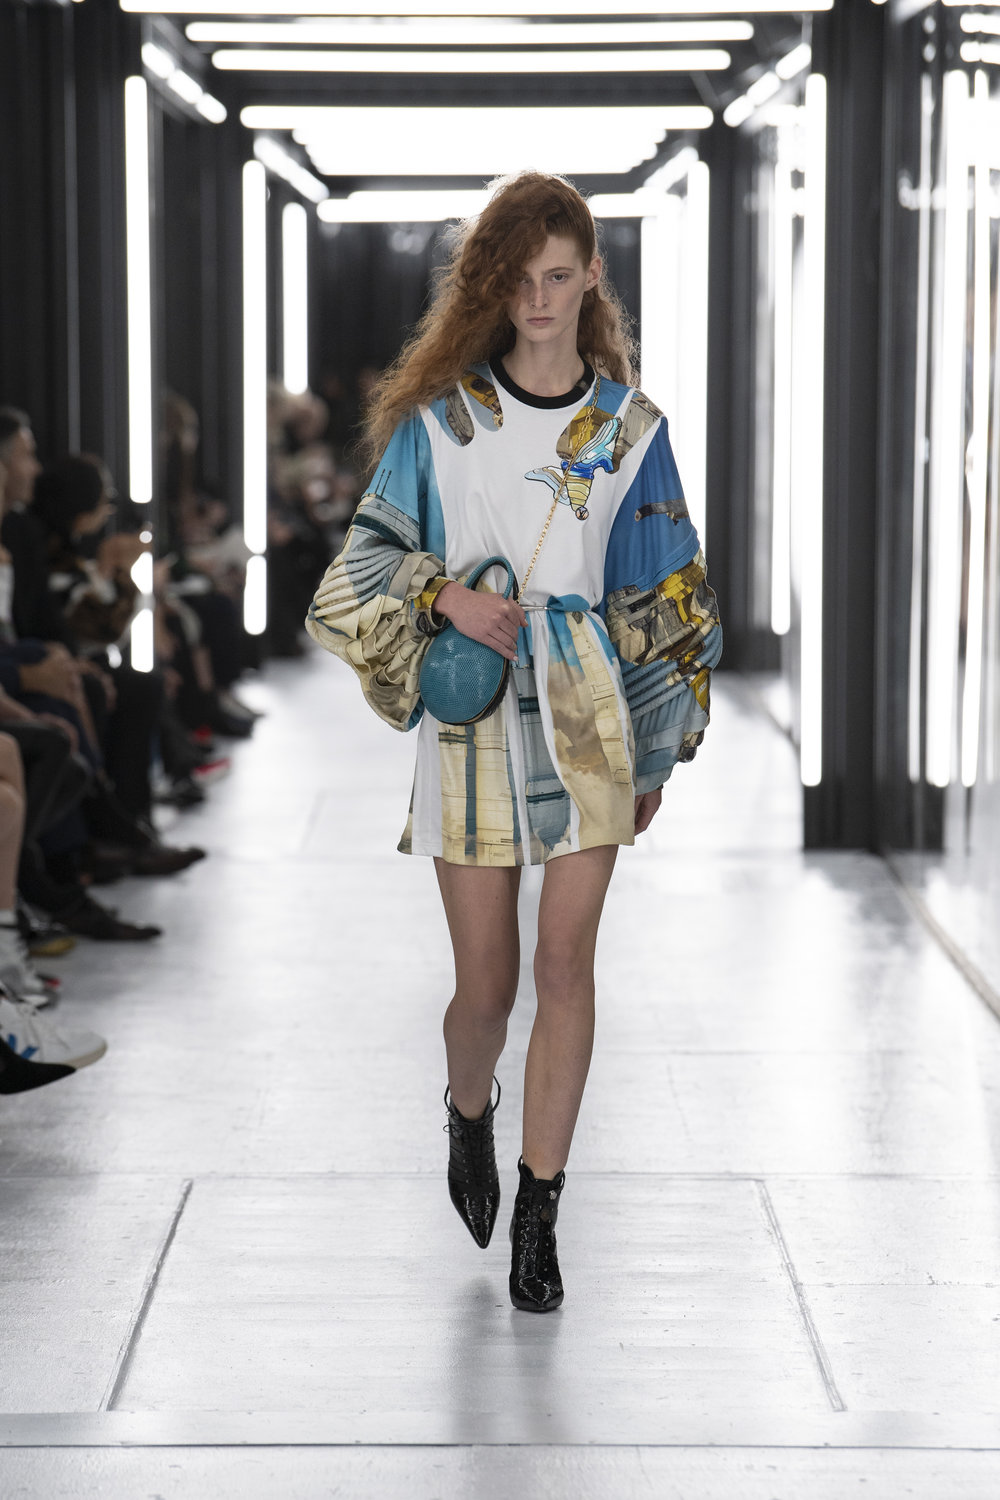 Louis_Vuitton_SS19_Look_02.jpg